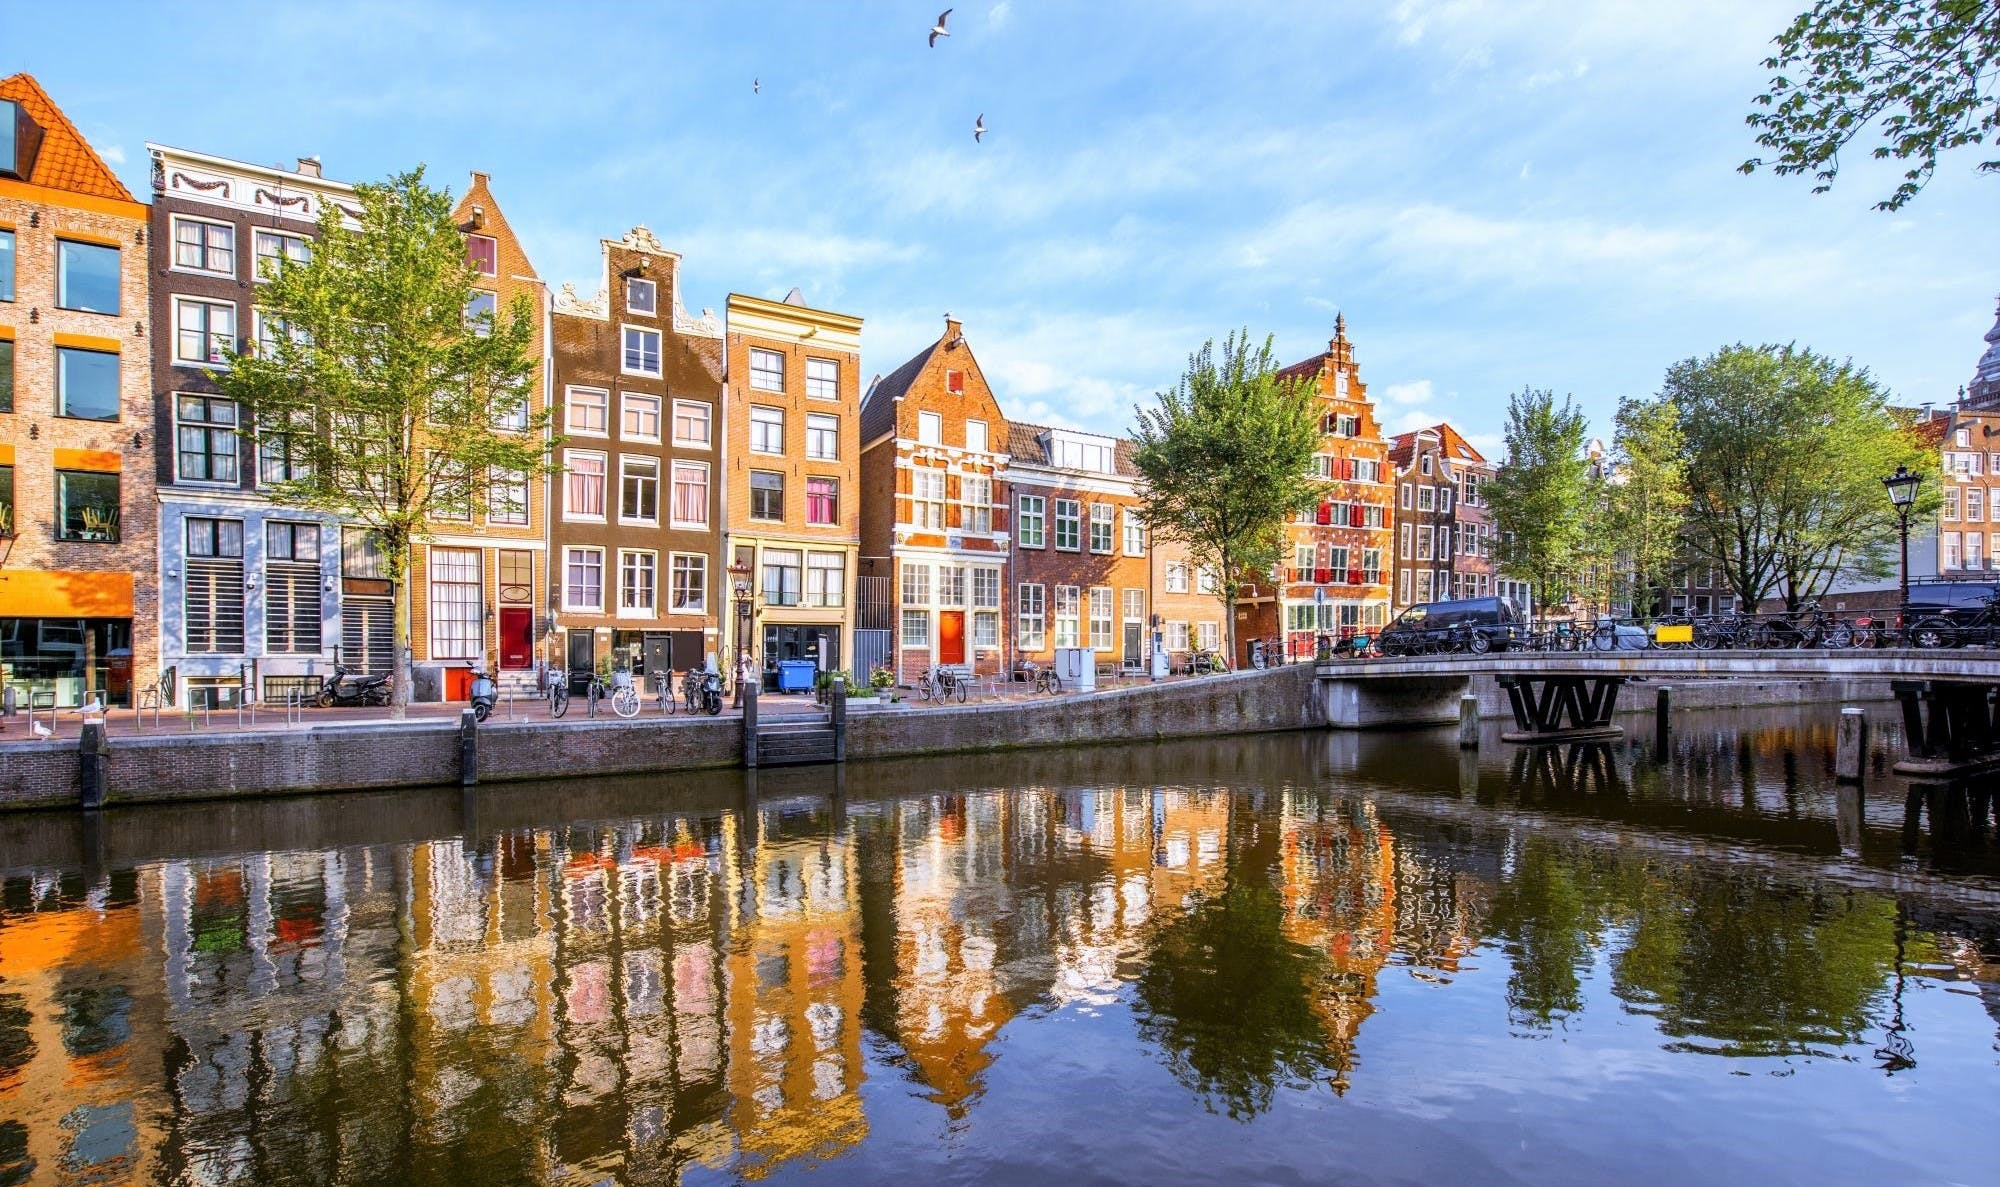 With beautiful architectural designs from the 16th and 17th century, Amsterdam is the perfect city for romanticism! (Photo: Release)